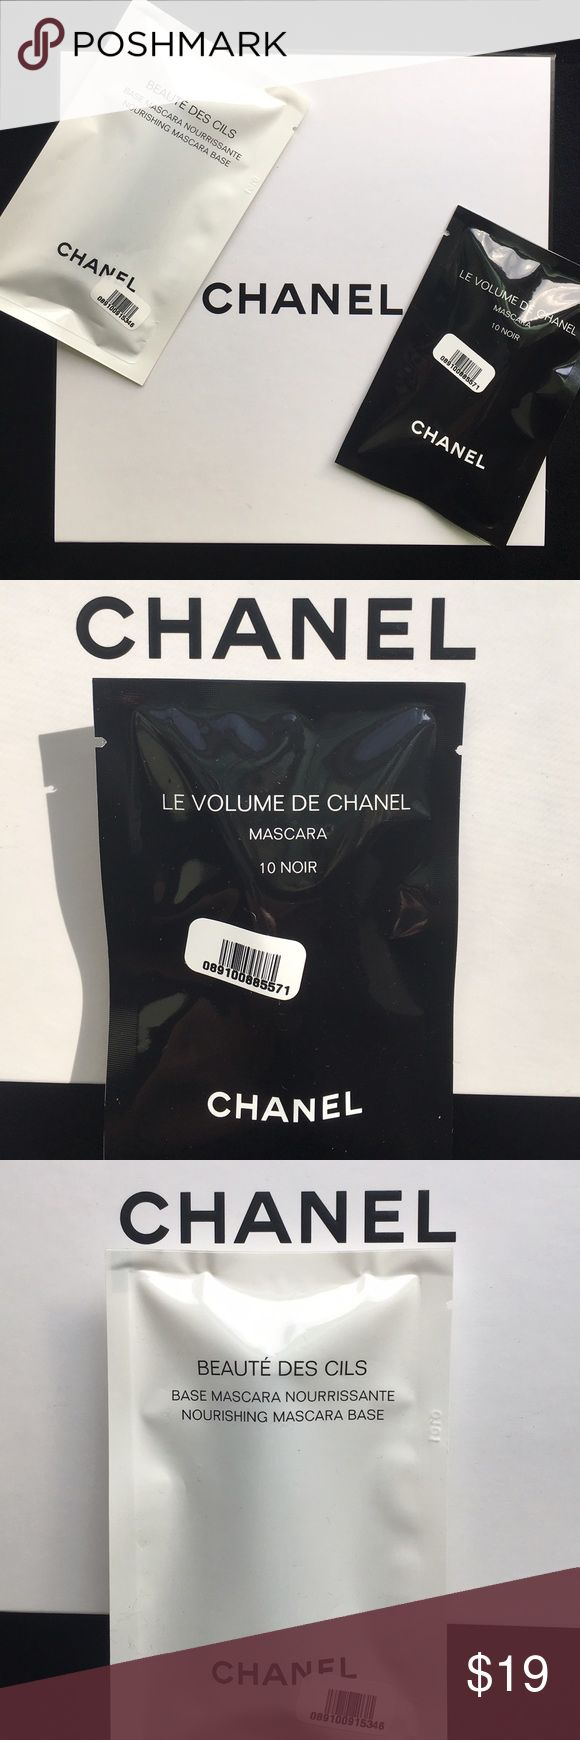 NWT! CHANEL Le Volume De Mascara & Beaute Des Cils NWT! CHANEL Le Volume De Mascara & CHANEL Beaute Des Cils Base. CHANEL Le Volume Mascara in 101 Noir 1ml/0.03oz & CHANEL Beaute De Cils Nourishing Mascara Base 1ml/0.03oz. FACTORY SEALED! Price Firm! CHANEL Makeup Mascara